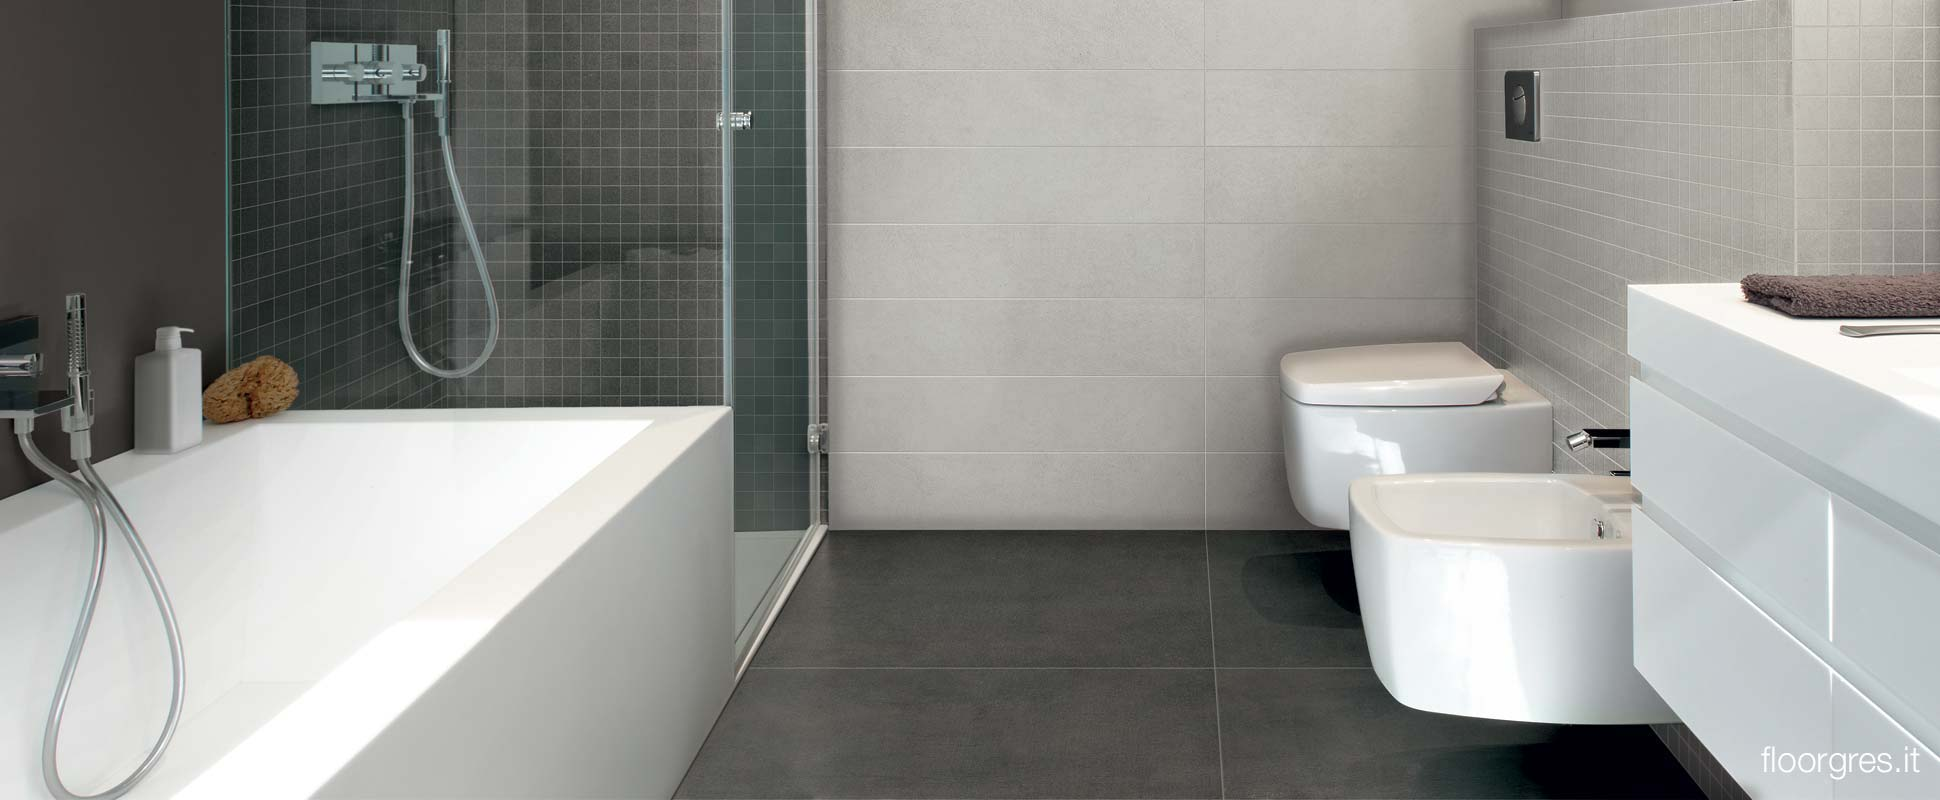 Tono Bagno - Floorgress Floortech baño1